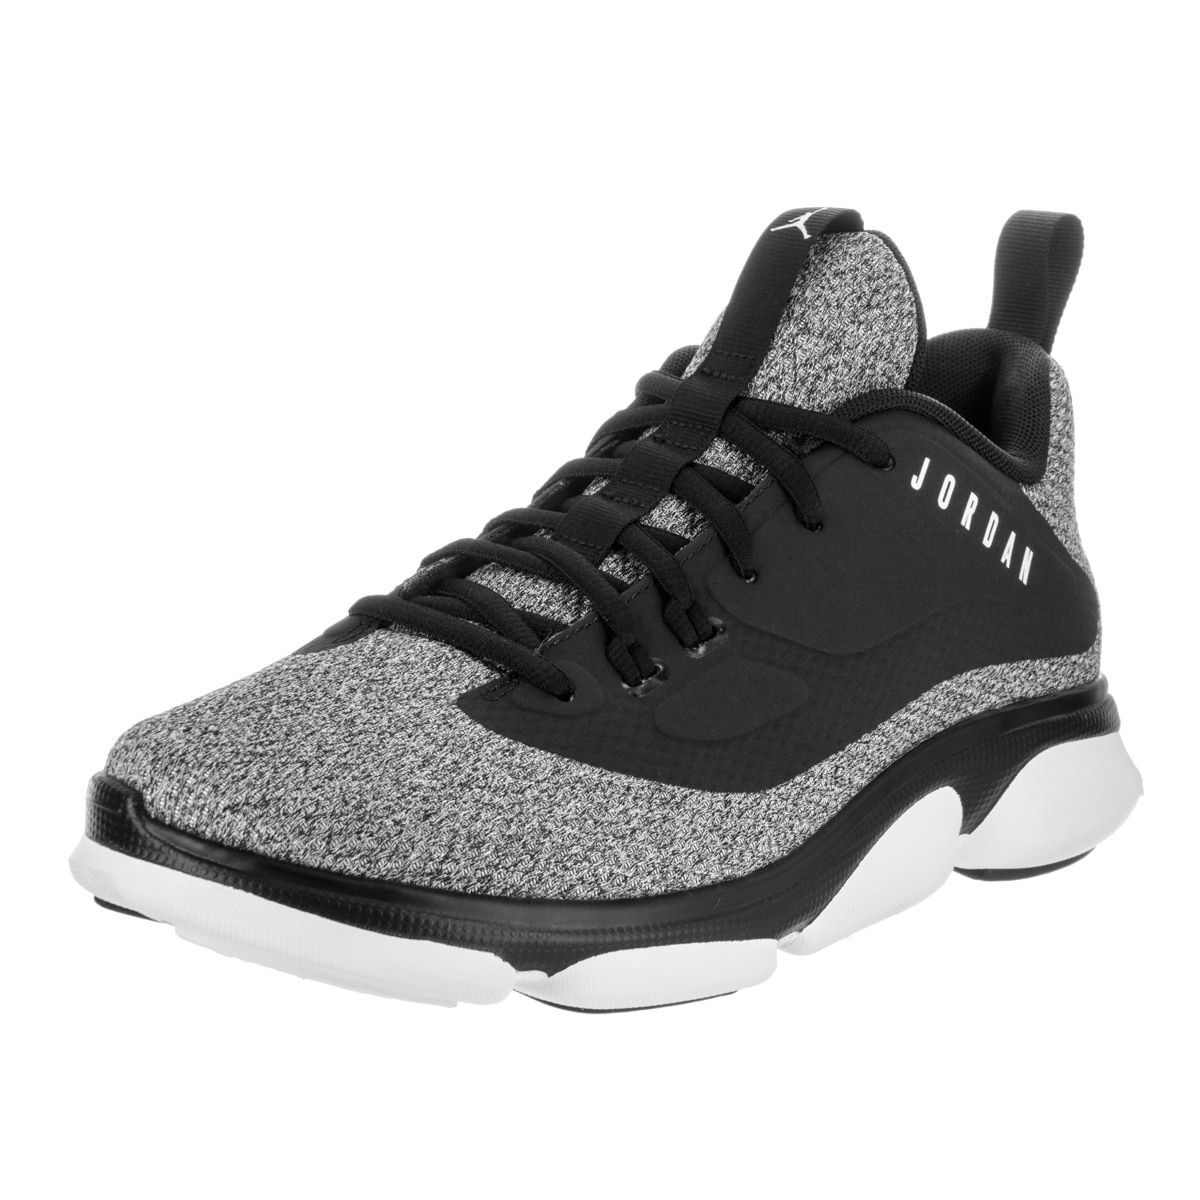 Nike Jordan Men\u0027s Jordan Impact Tr Training Shoes